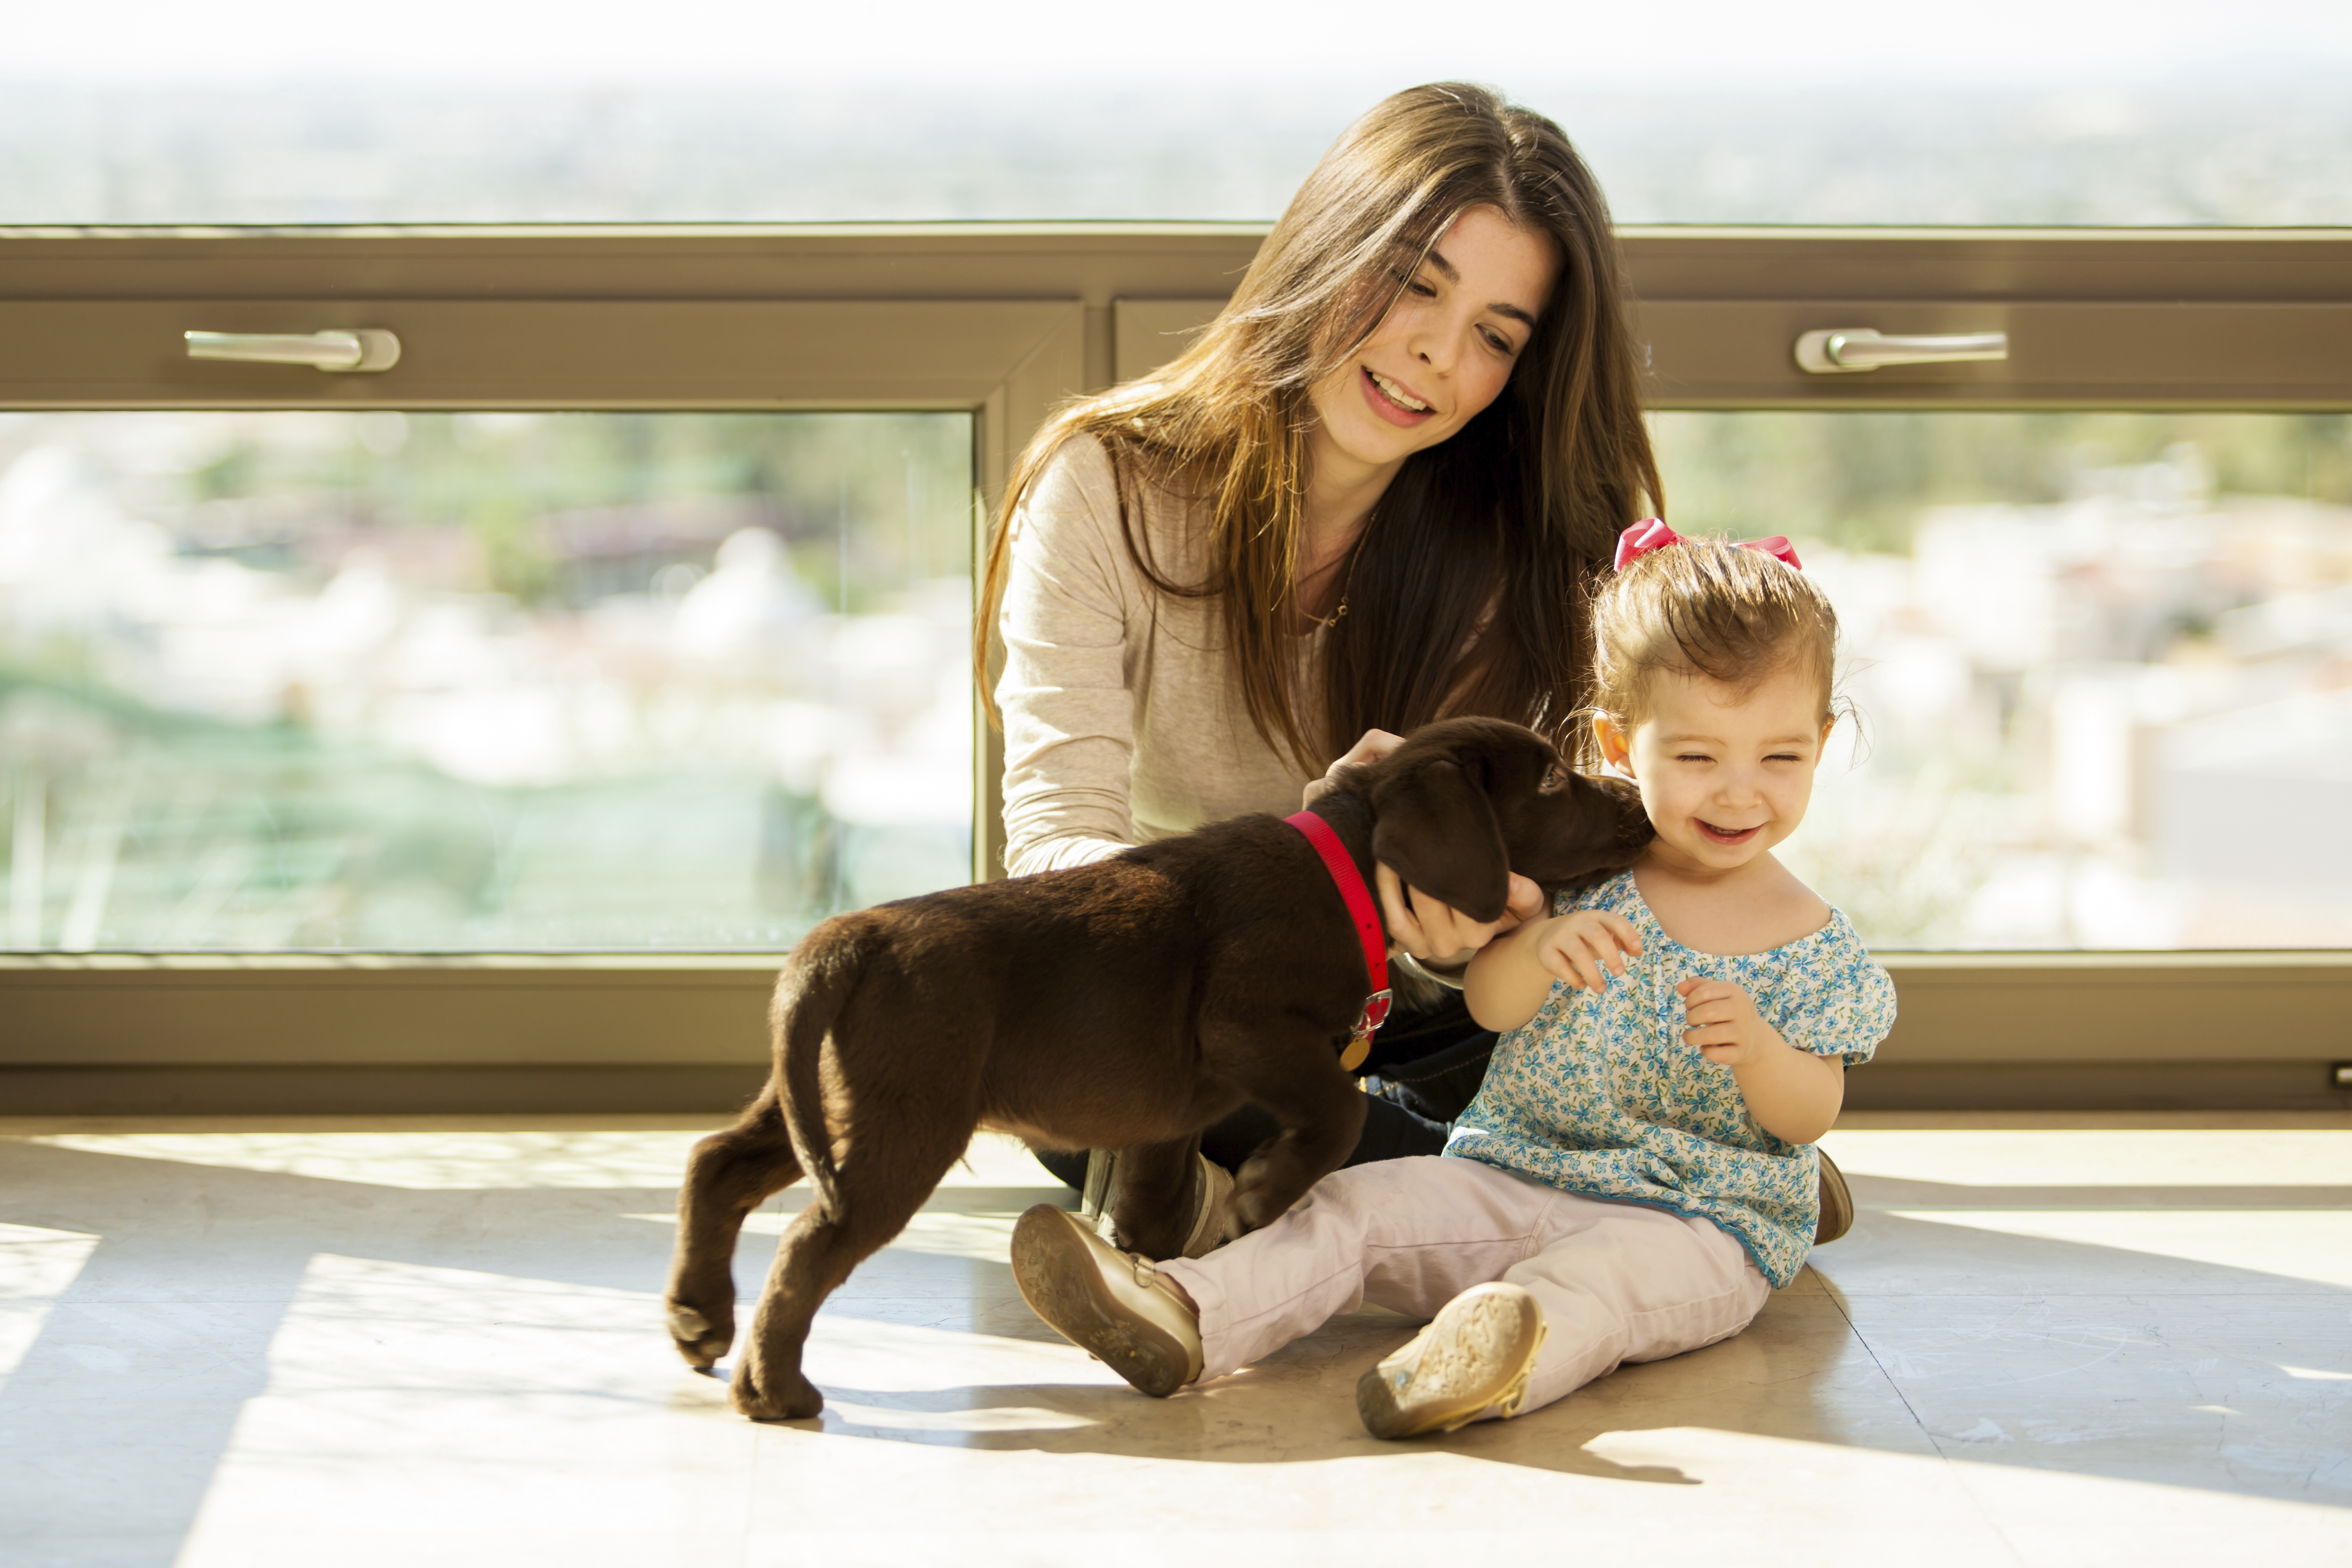 How To Keep Interactions Between Dogs And Kids Safe